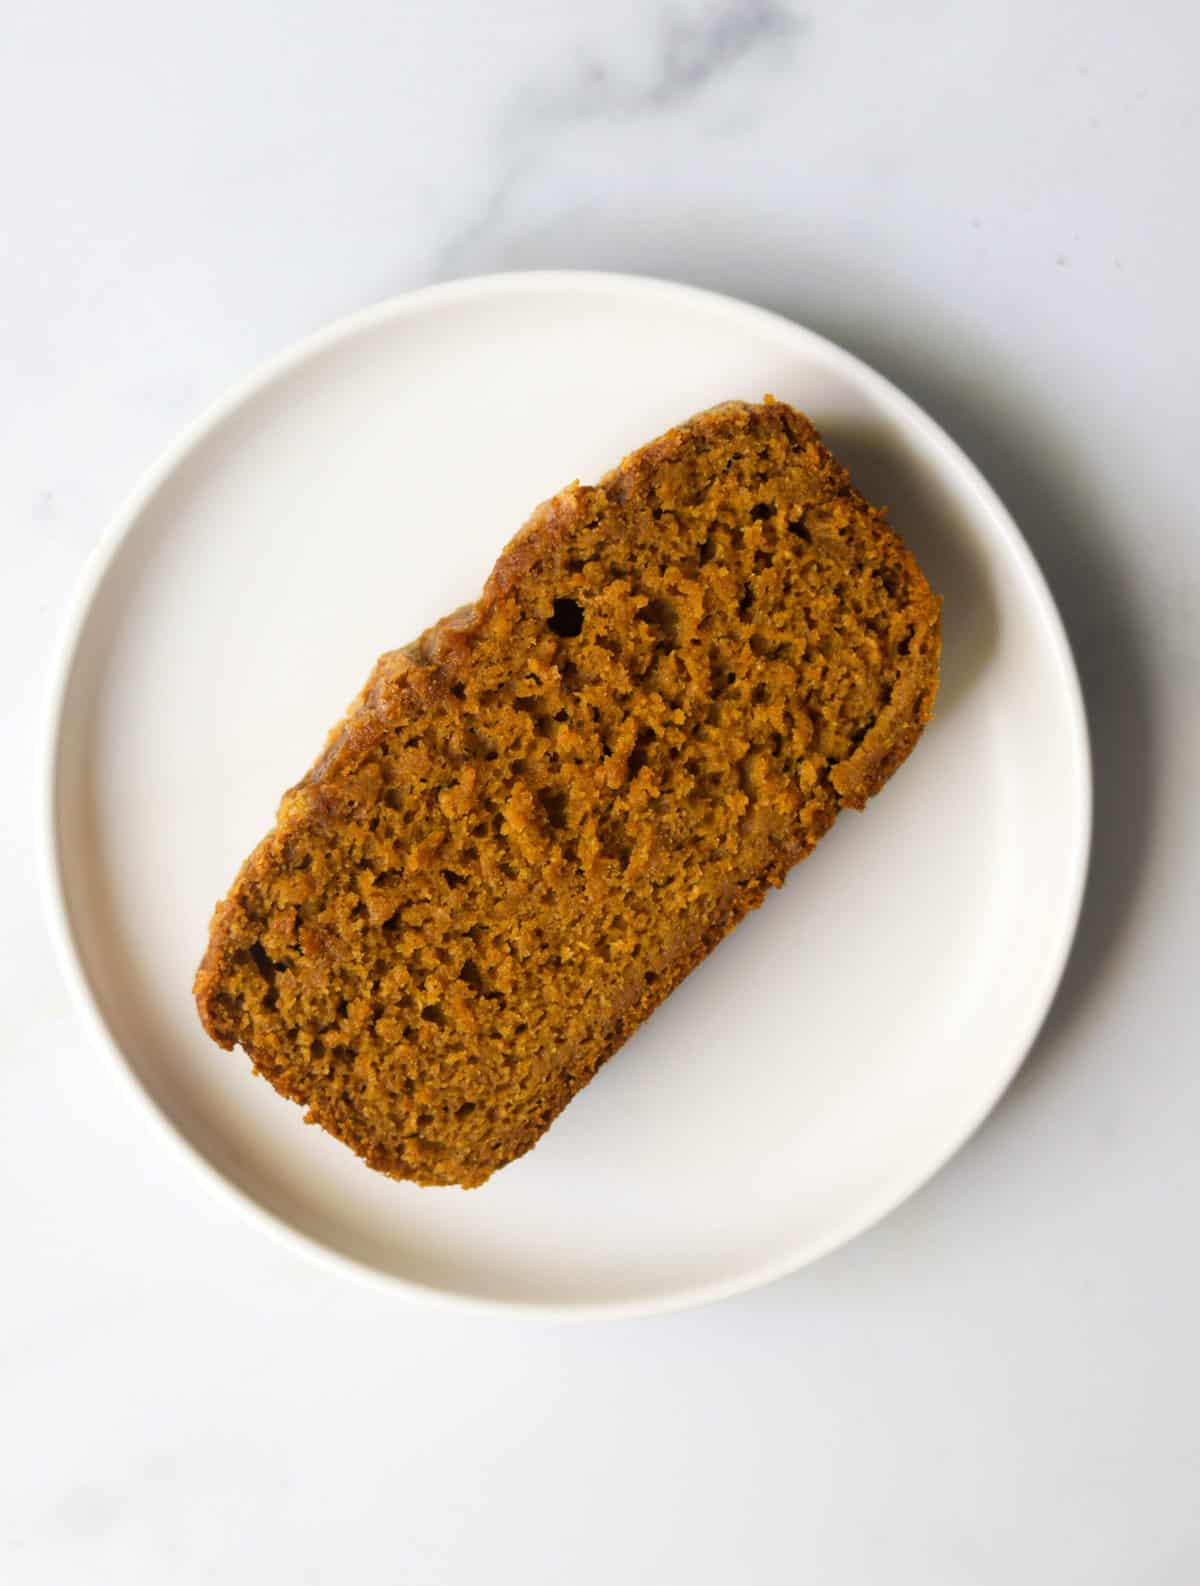 One slice of pumpkin bread on a white plate.